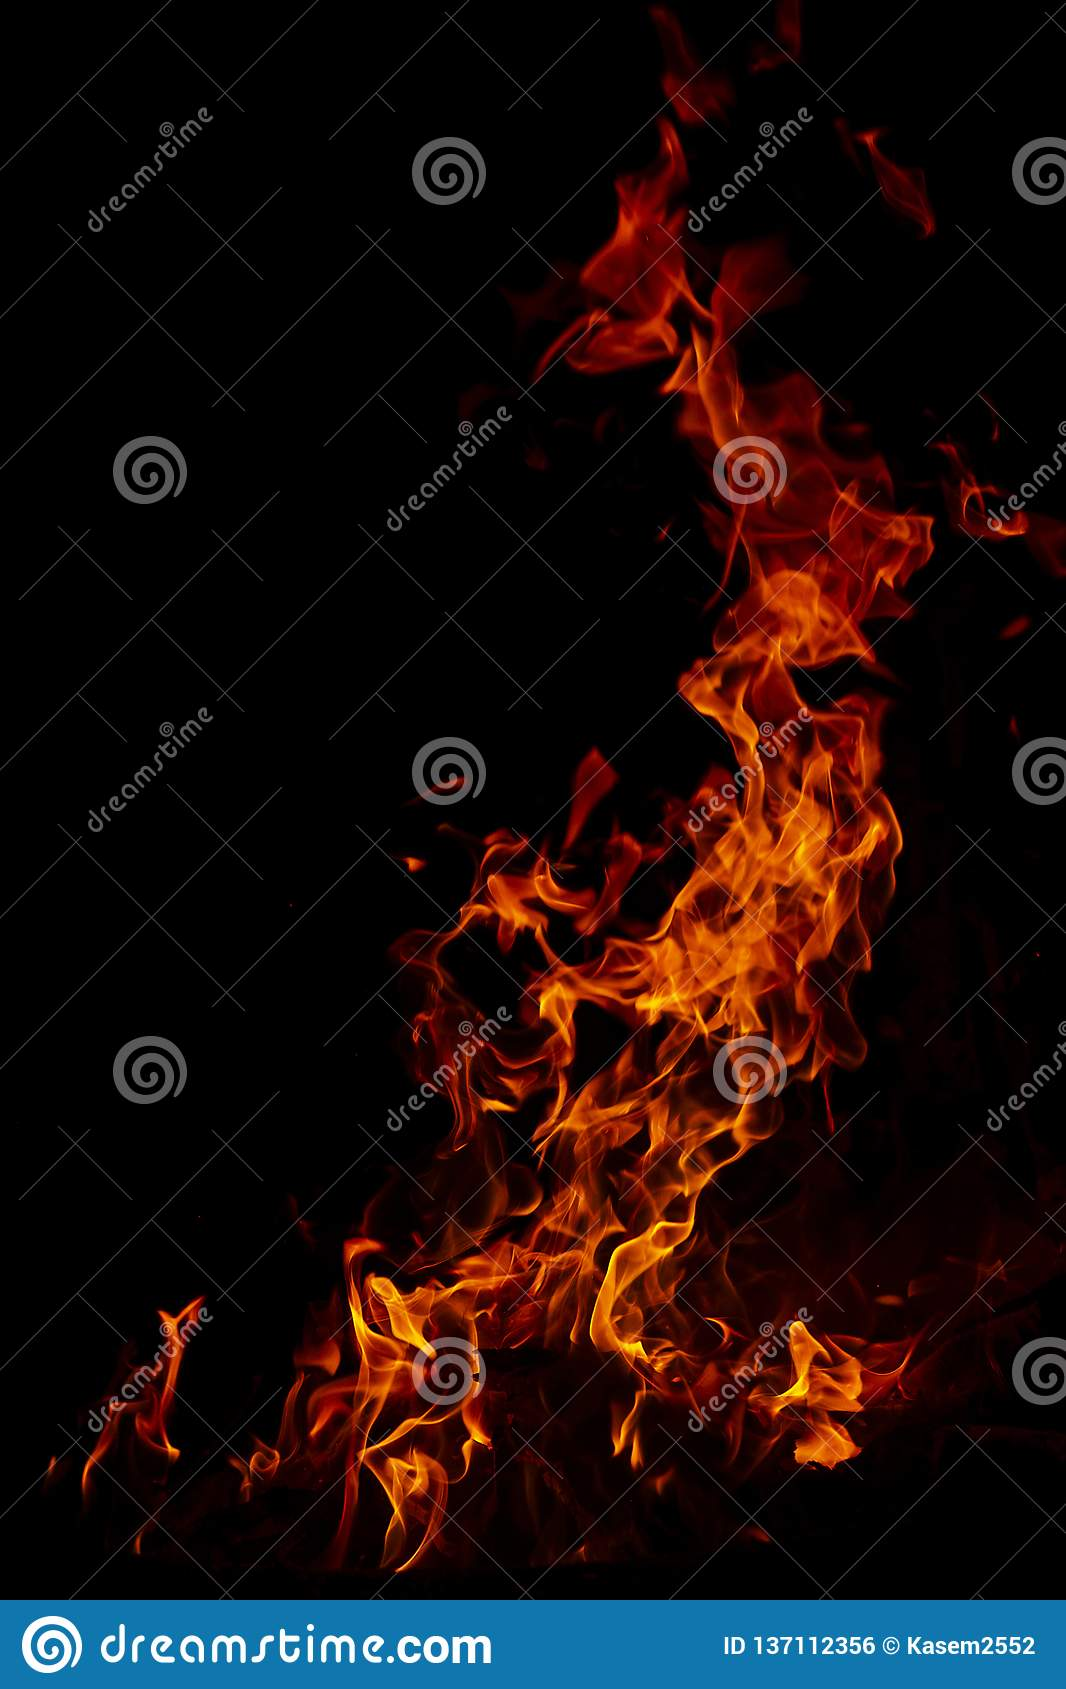 Fire flames on Abstract art black background texture, Burning red hot sparks rise from large fire in, Fiery orange glowing